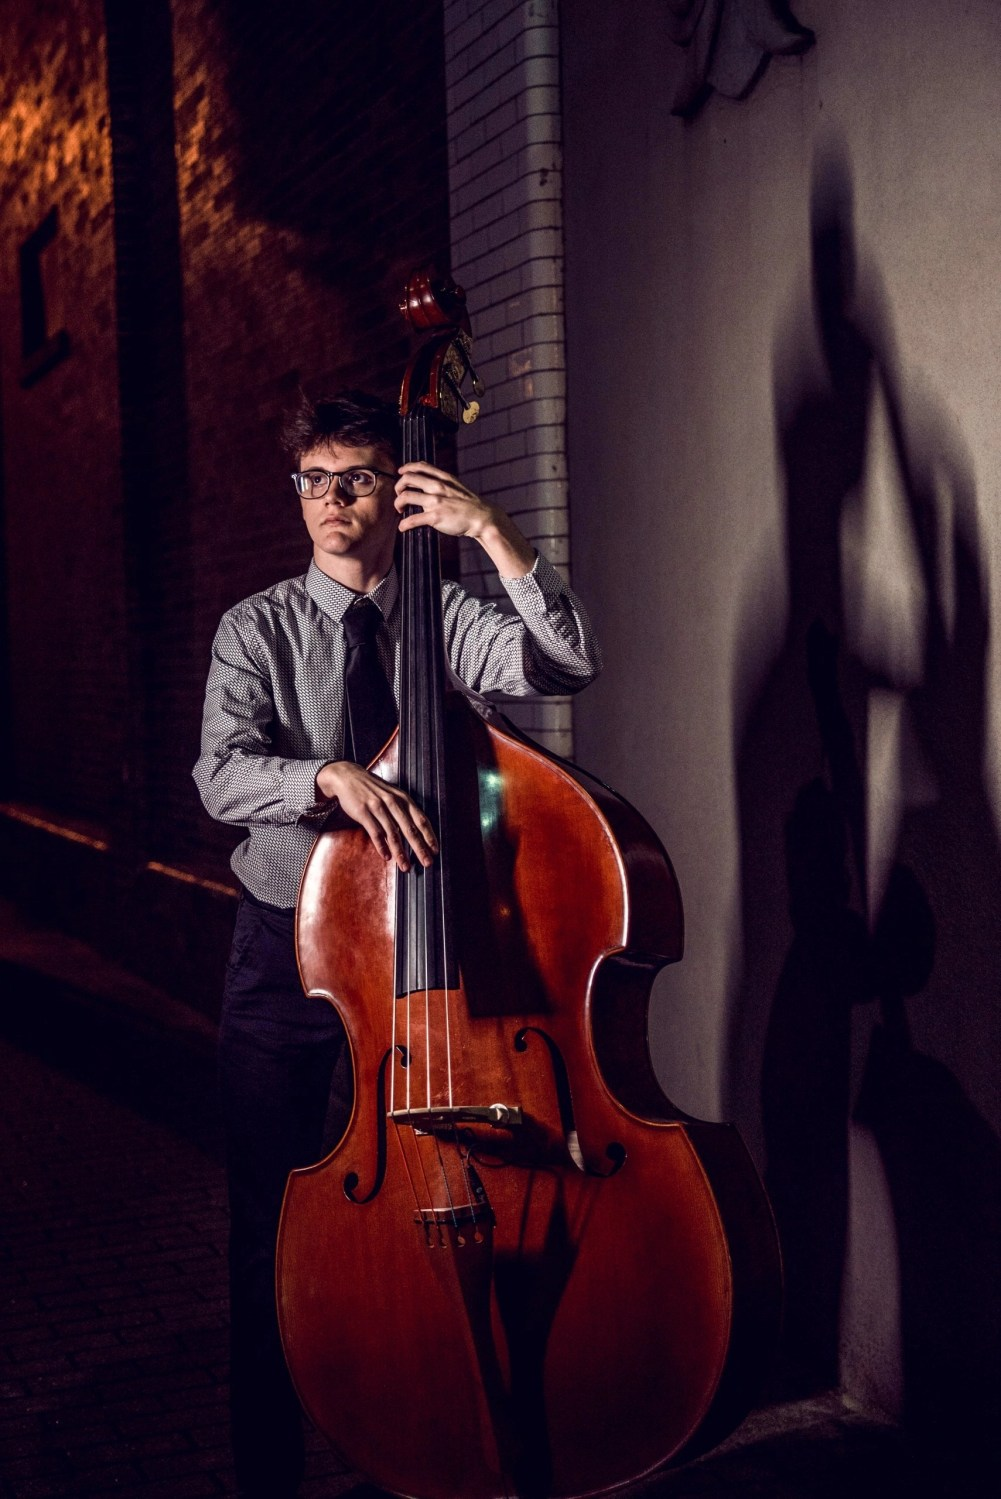 artistic male senior portrait playing musical instrument